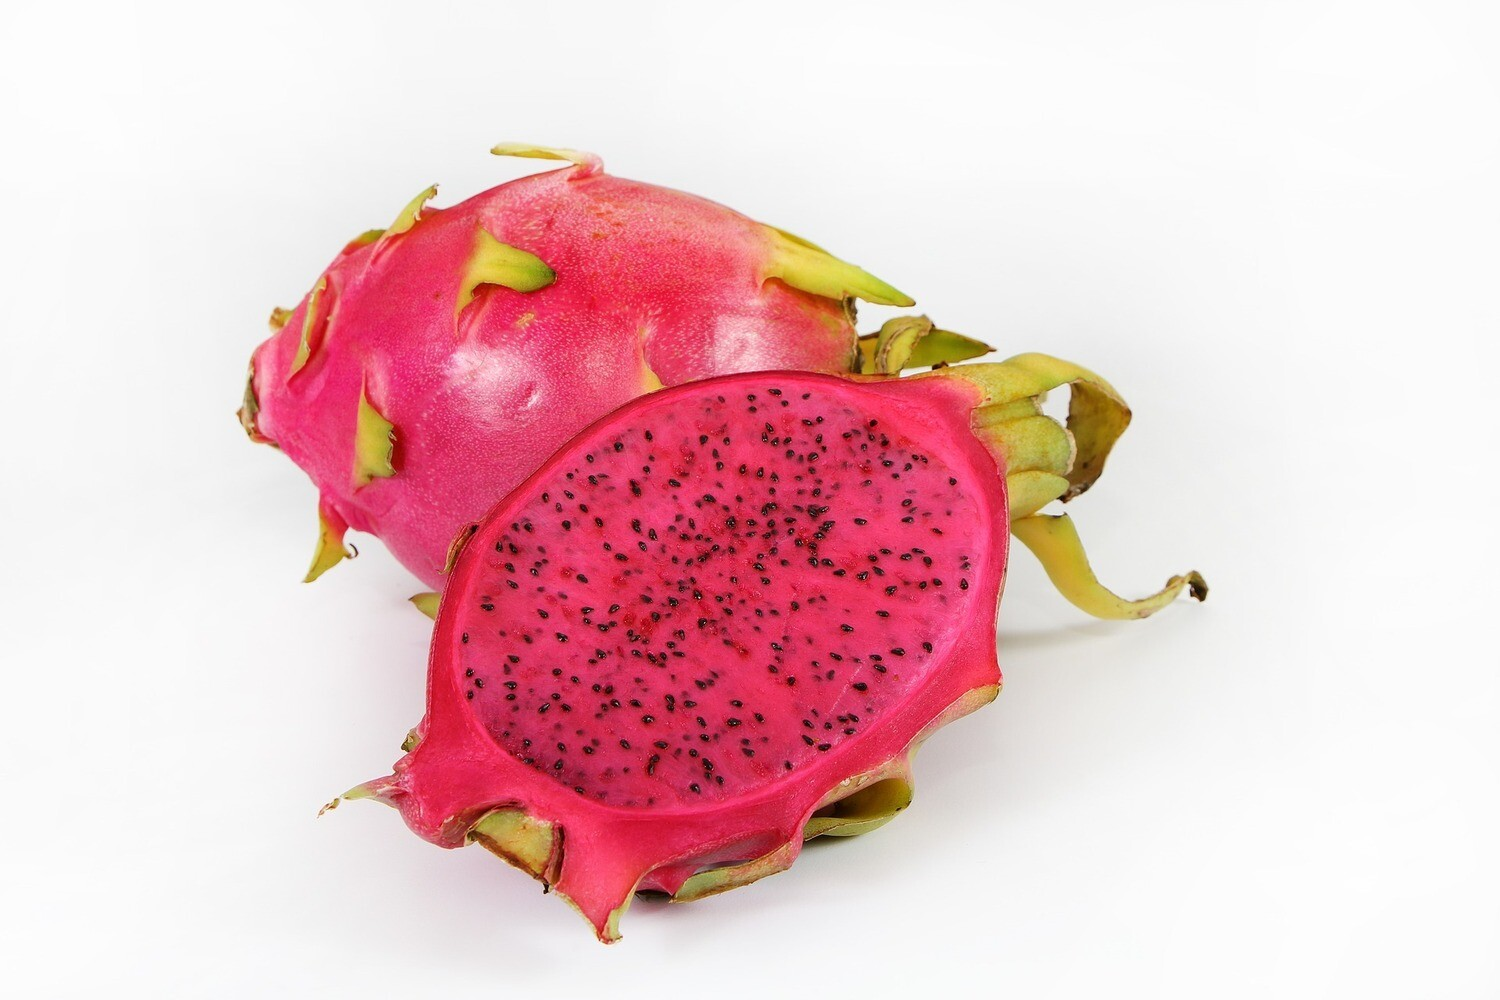 Red Dragon Fruits